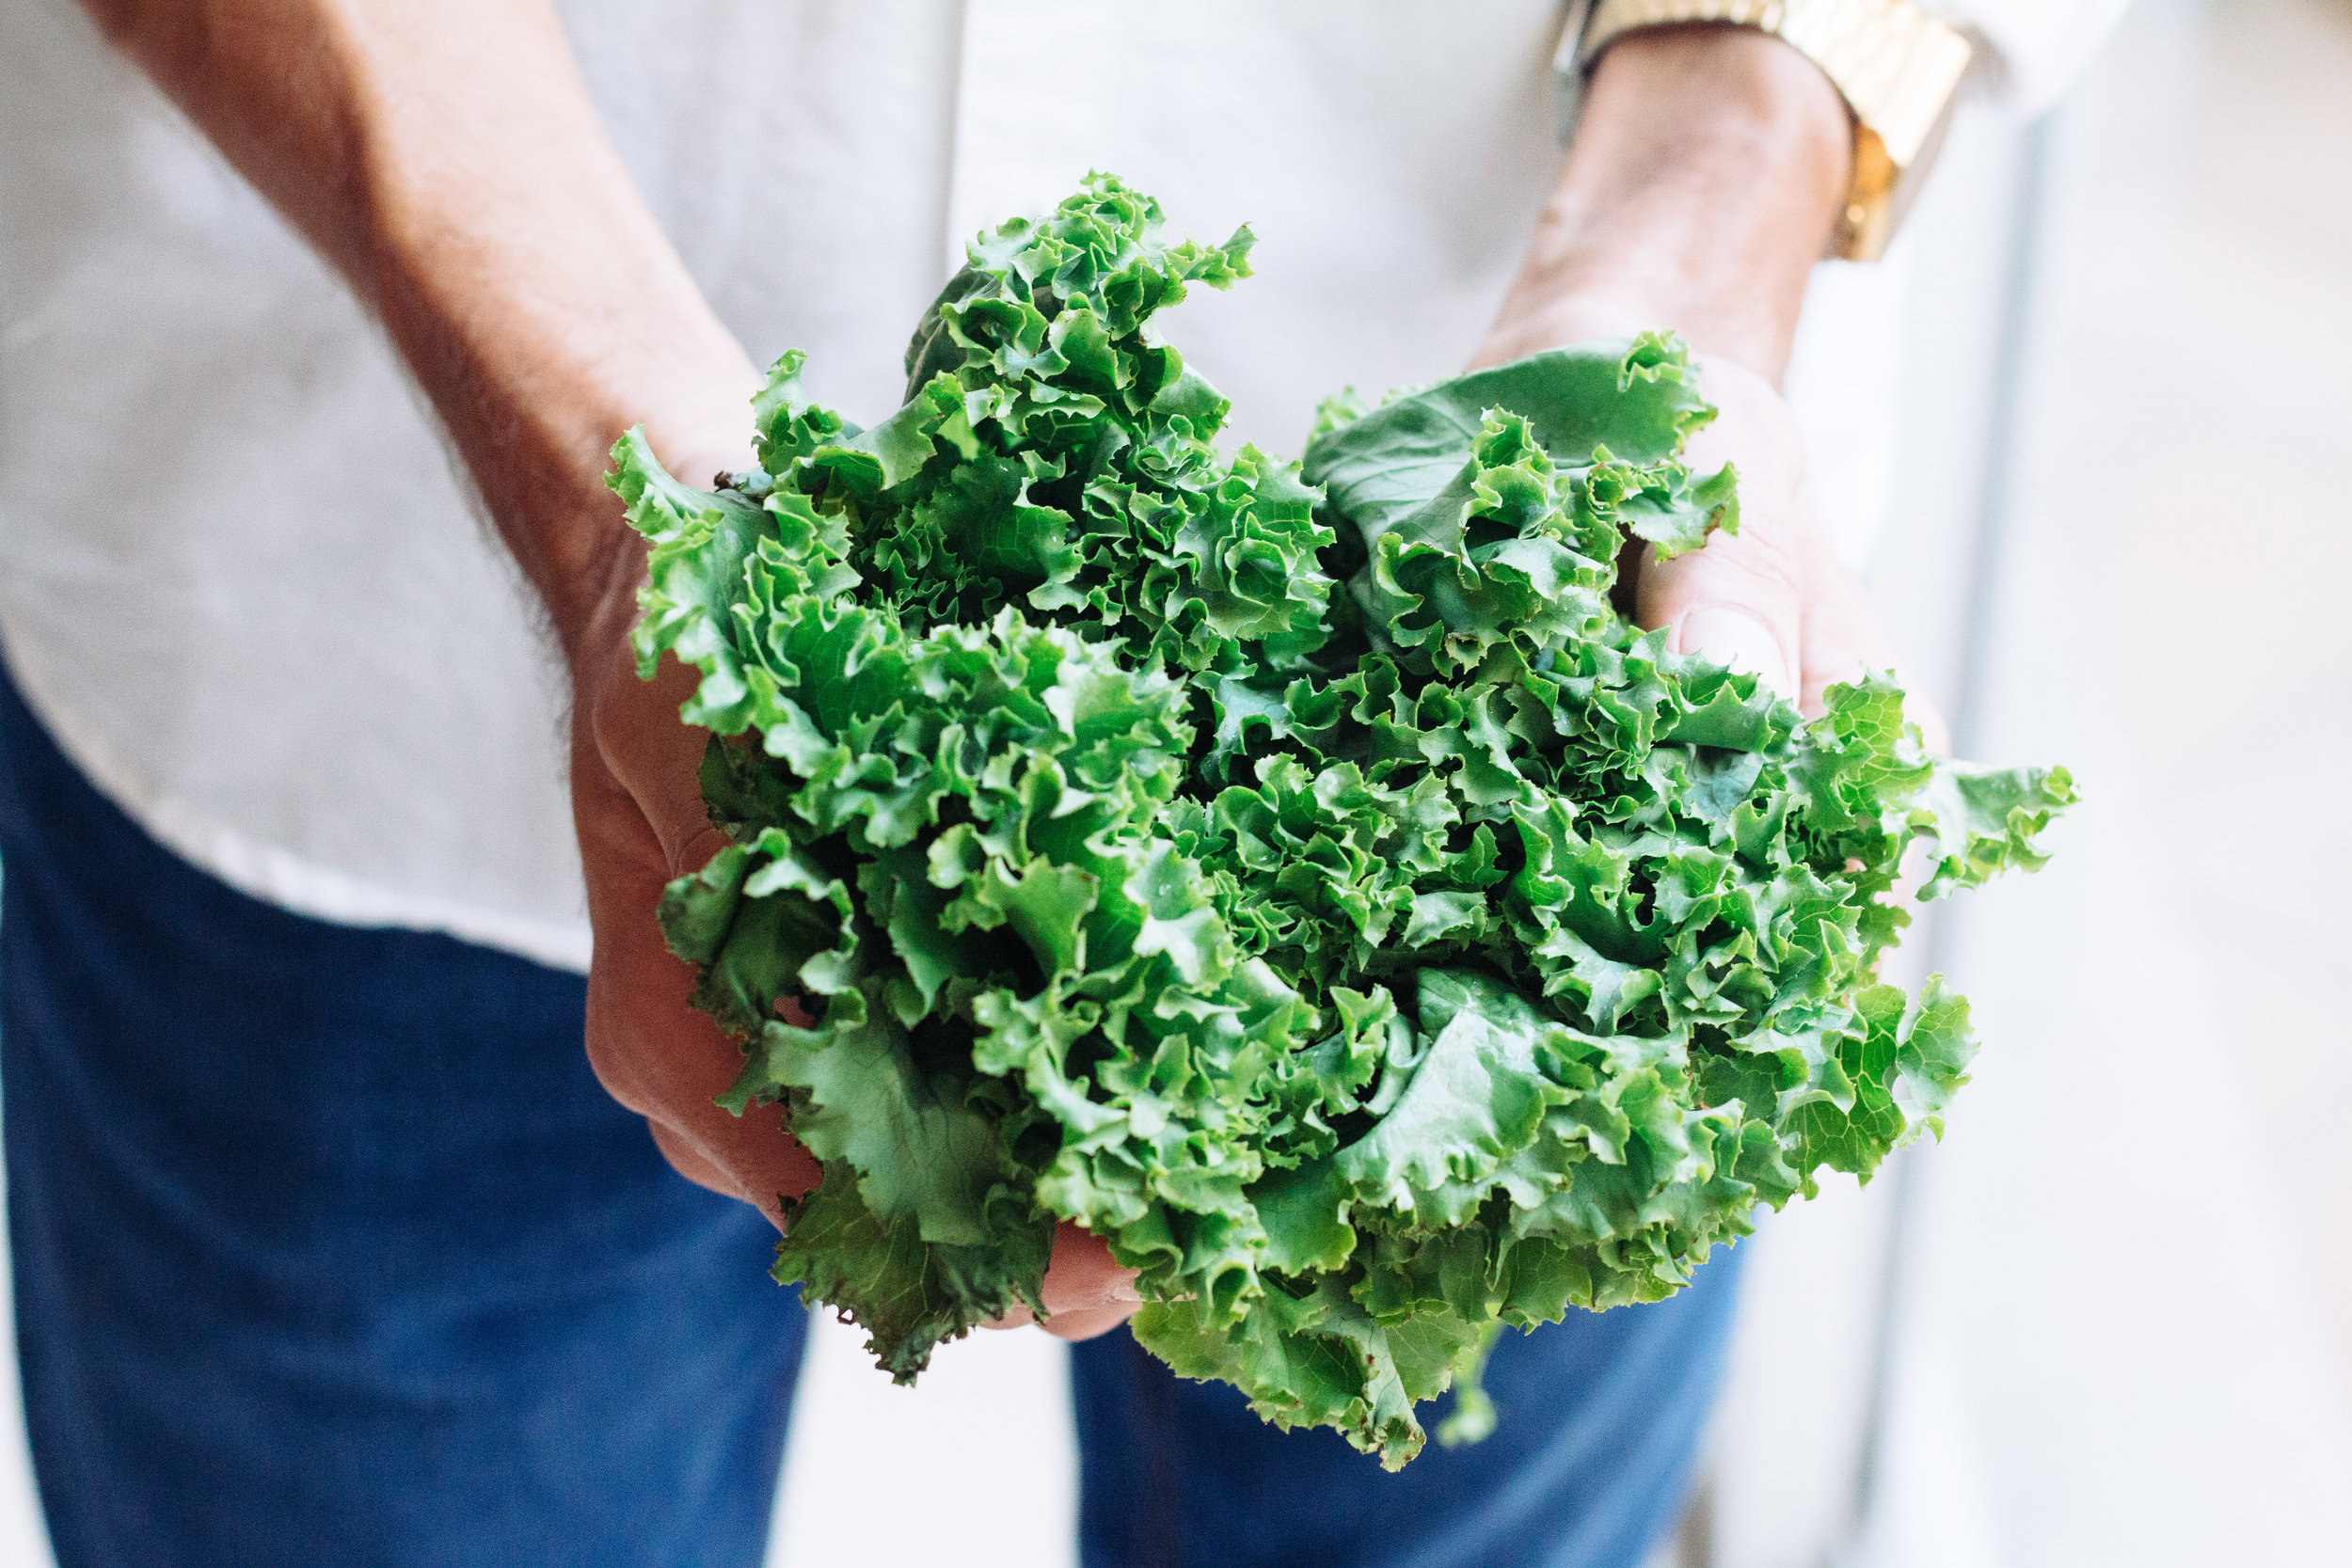 Toss these into your juicer: - 2 Handfuls Kale2 Handfuls Spinach2 Cucumbers1 Knuckle Ginger1 Lemon1 Lime1 AppleMakes 36oz of juice